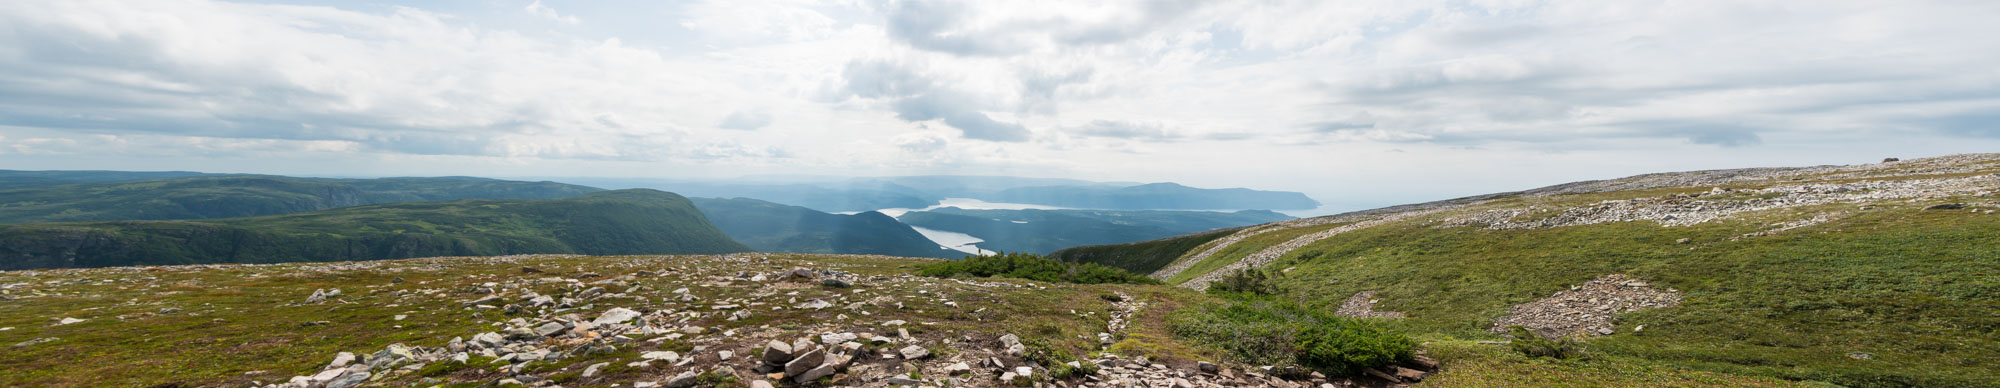 View from the summit of Gros Morne